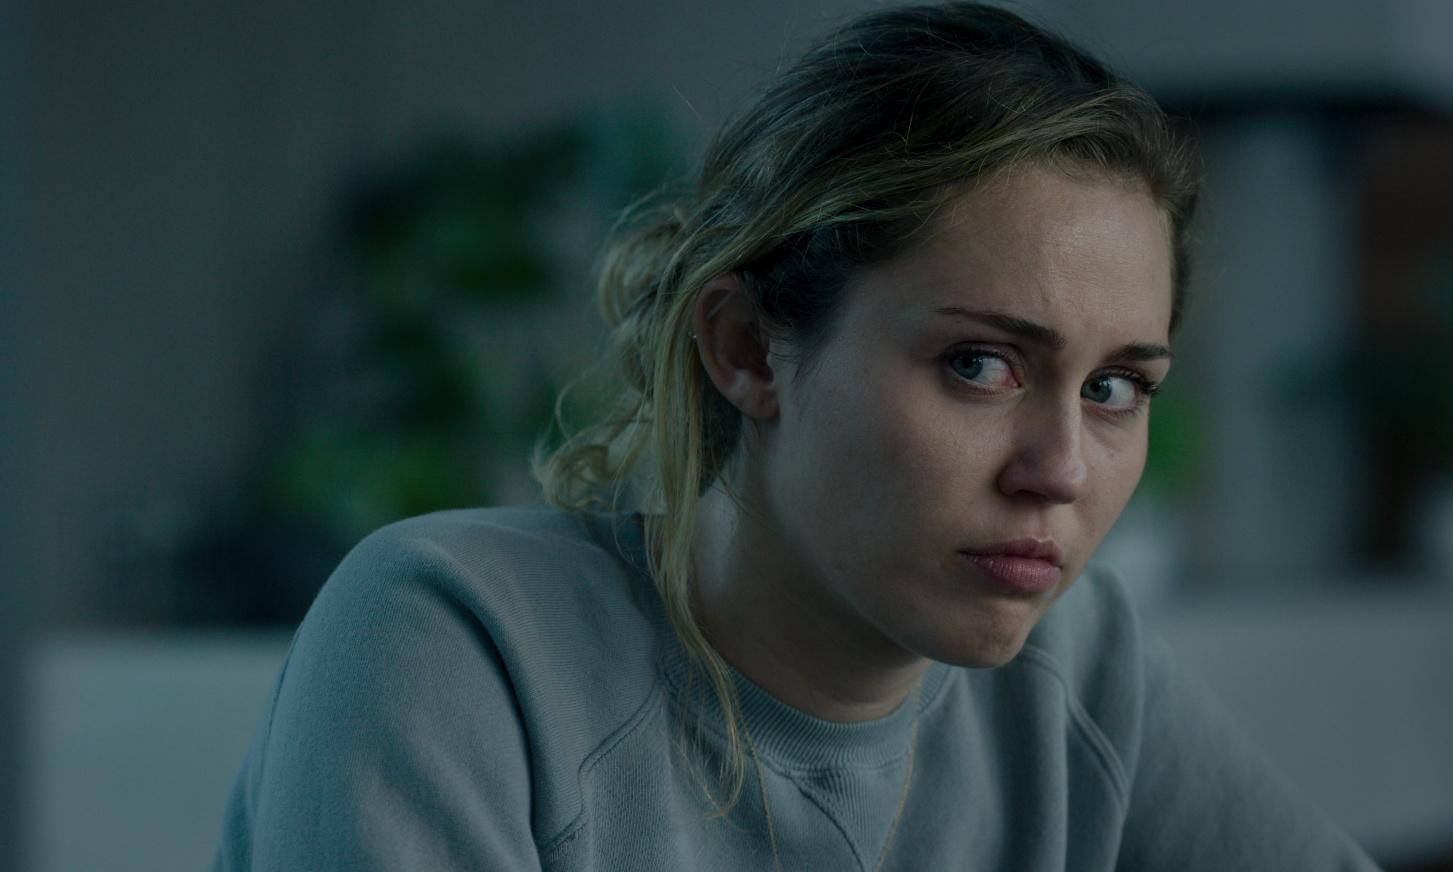 Out of tune: why Miley Cyrus' Black Mirror episode hits the wrong note